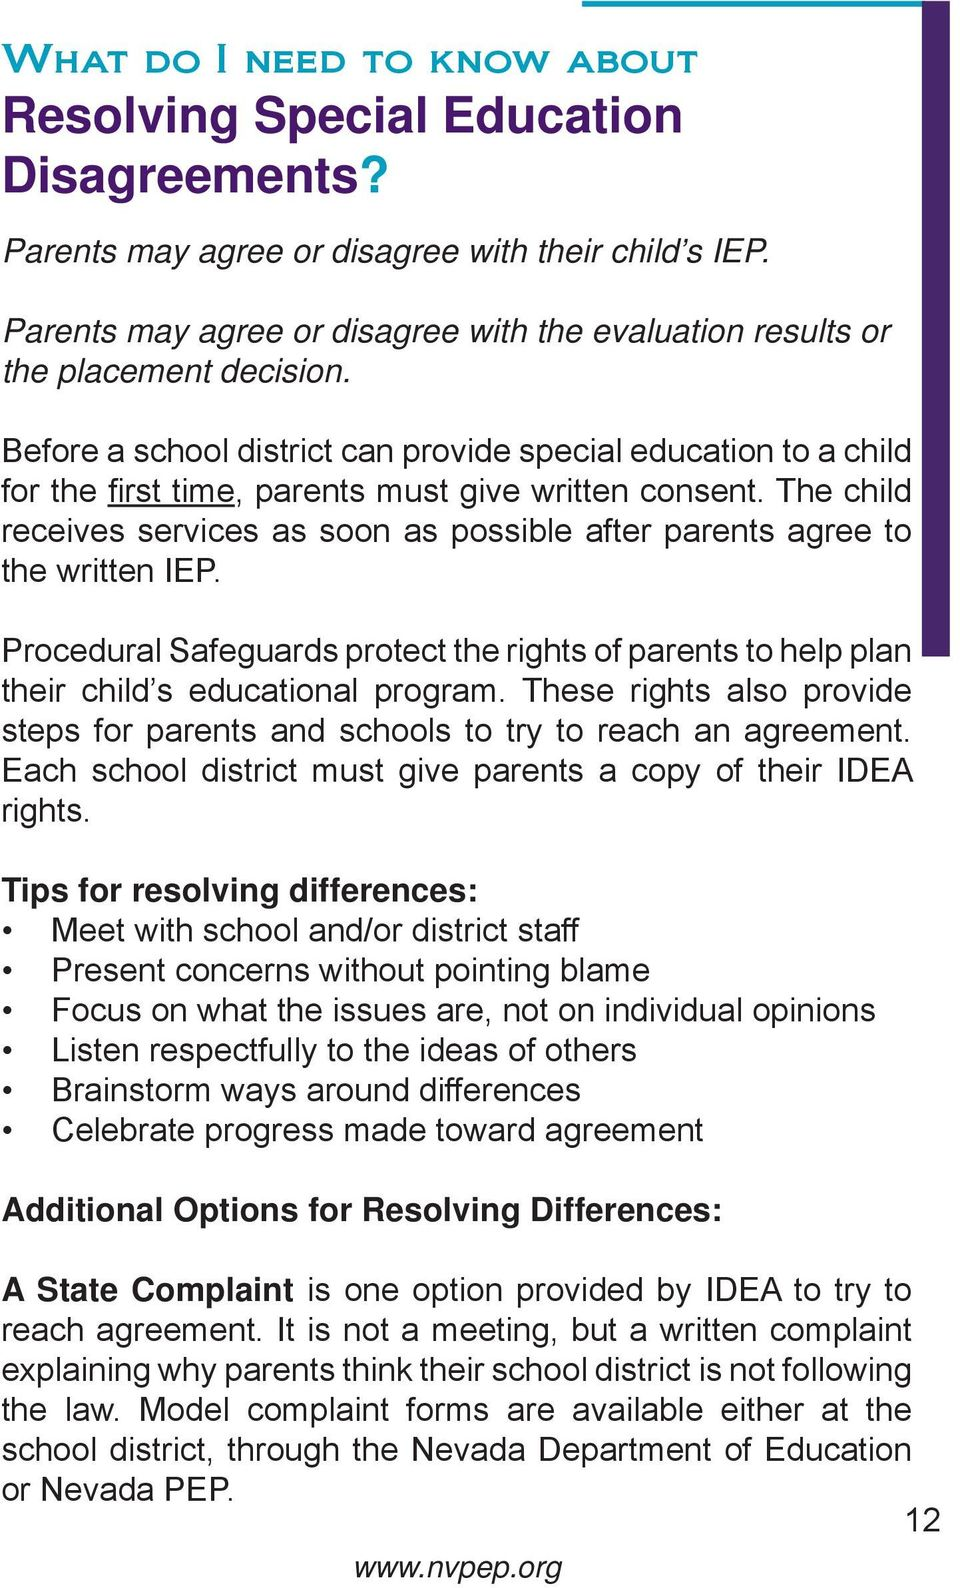 Before a school district can provide special education to a child for the fi rst time, parents must give written consent.